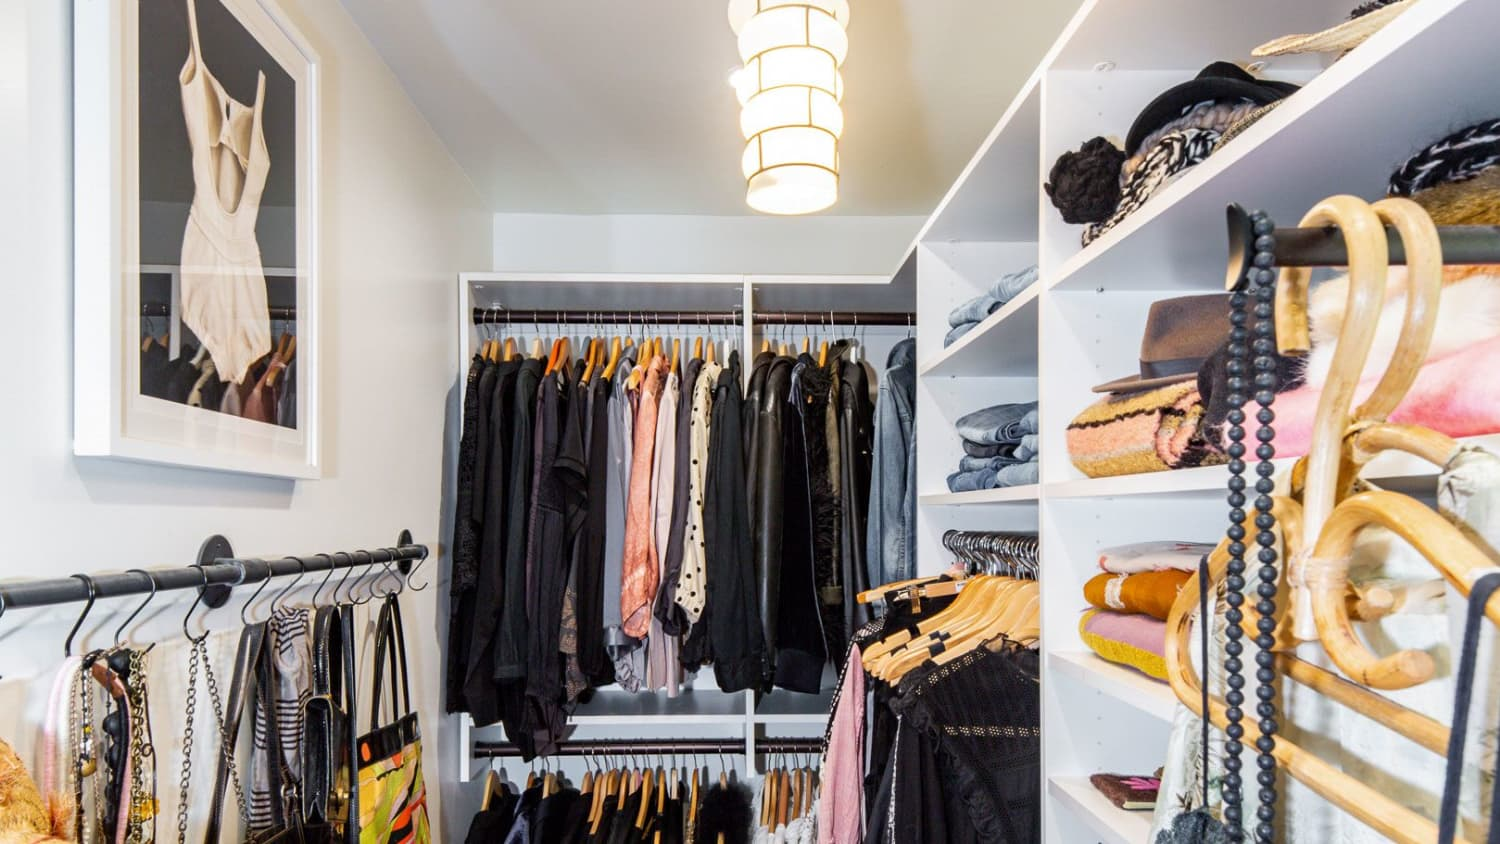 How To Design A Walk-In Closet With California Closets ...